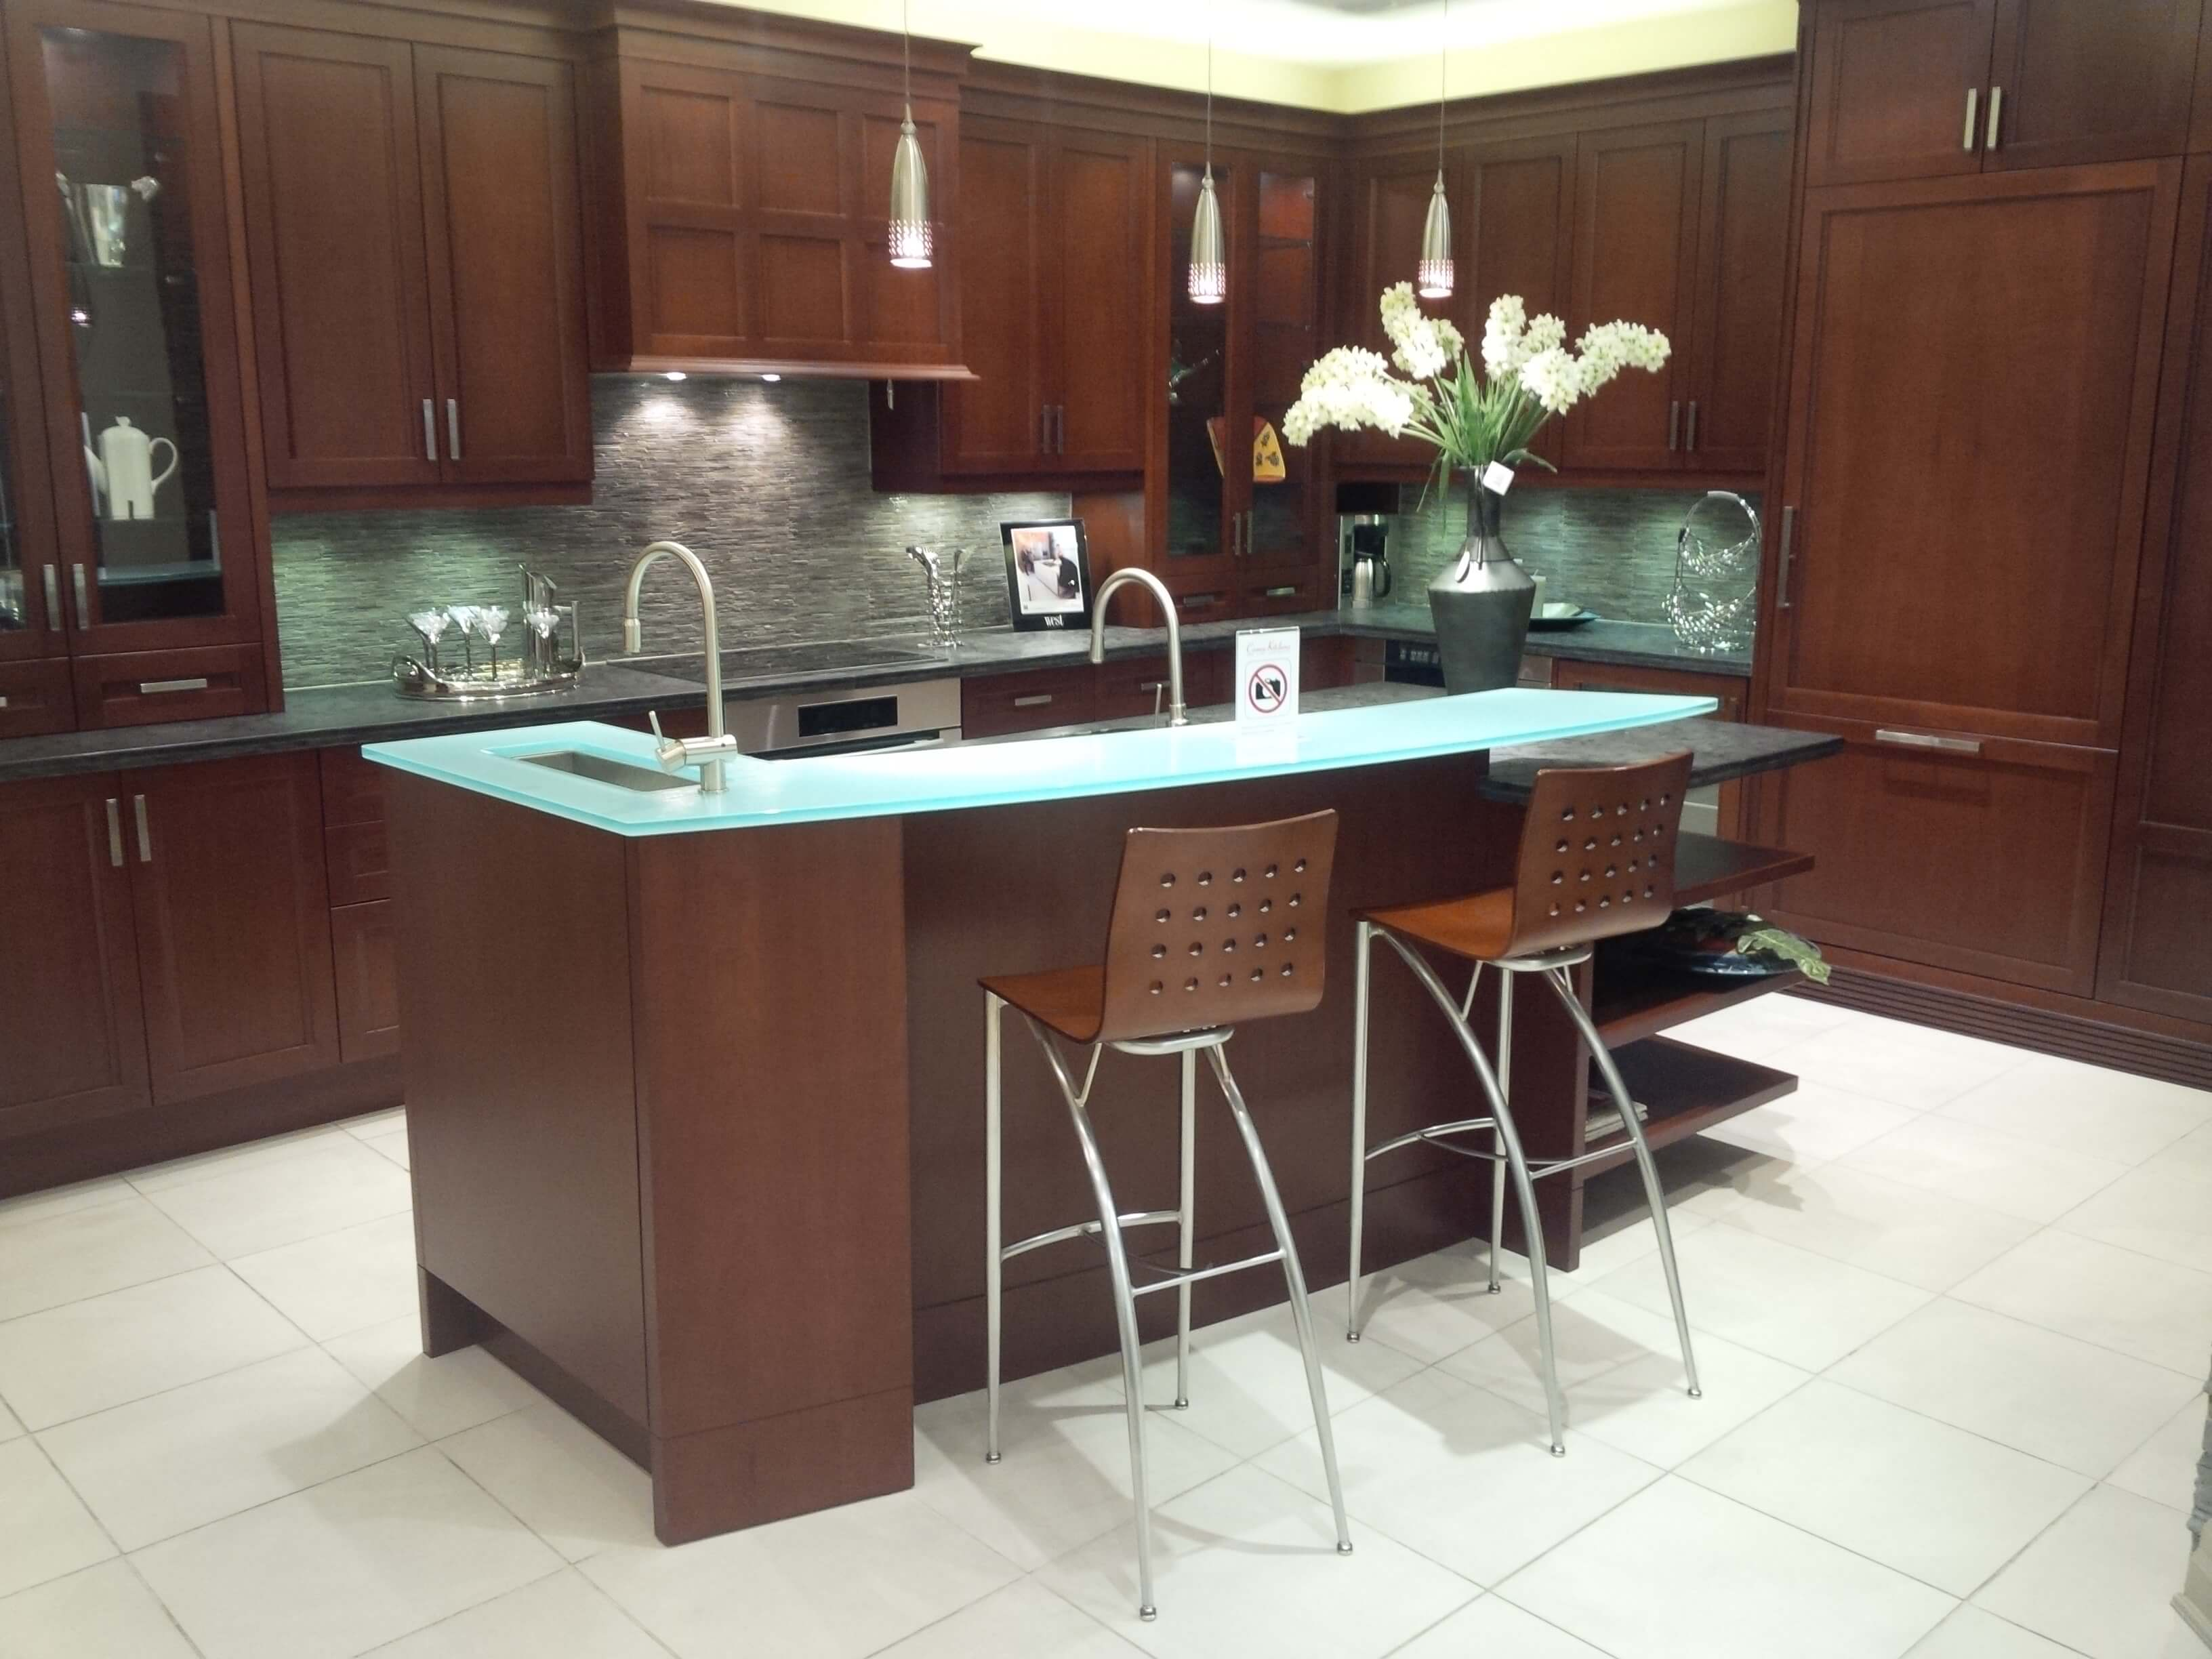 kitchen paints table rugs painting toronto cabinet painters perfect painter 2